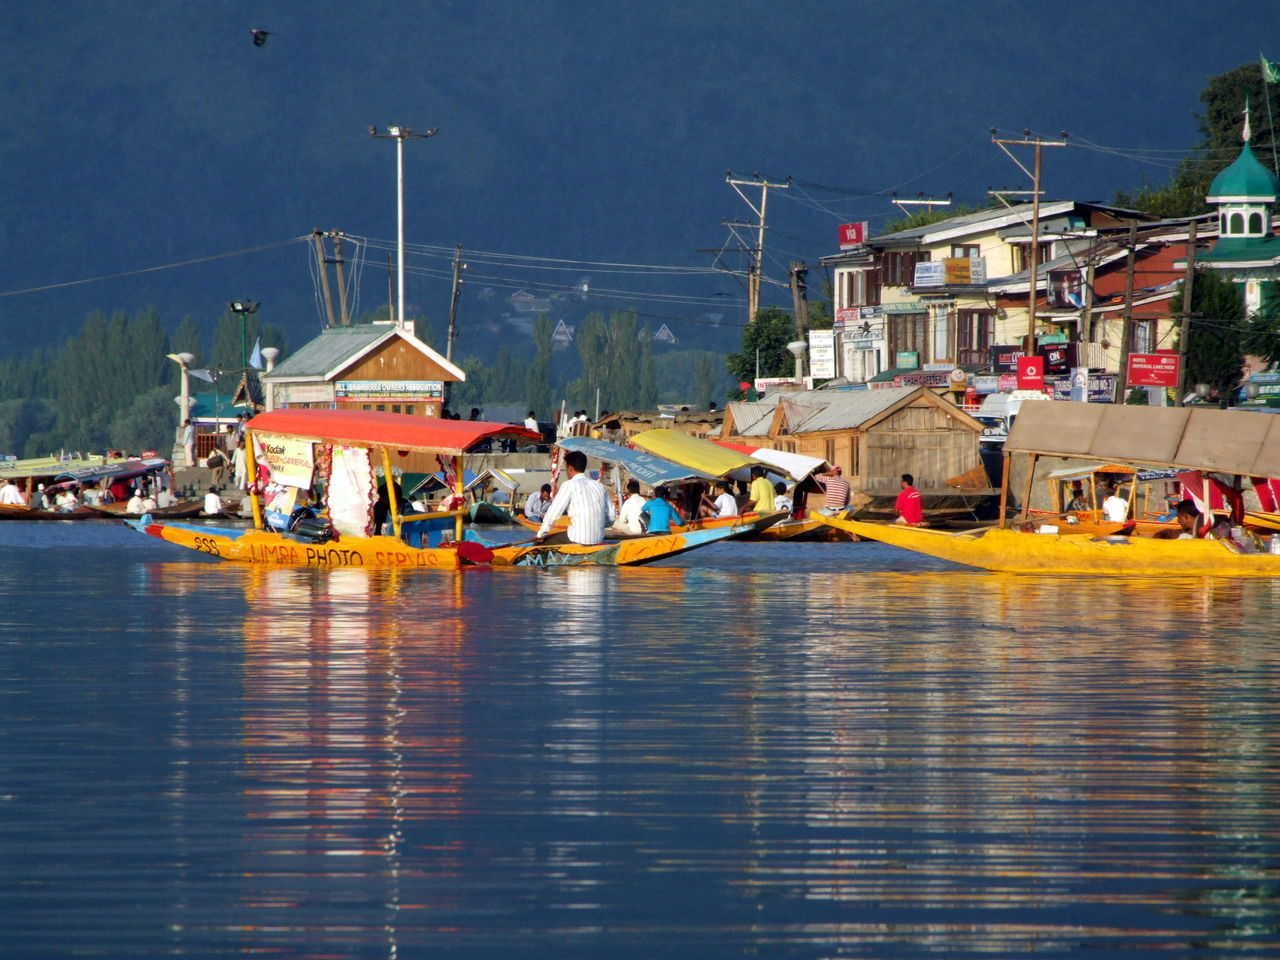 People In Boat On Lake By Houses